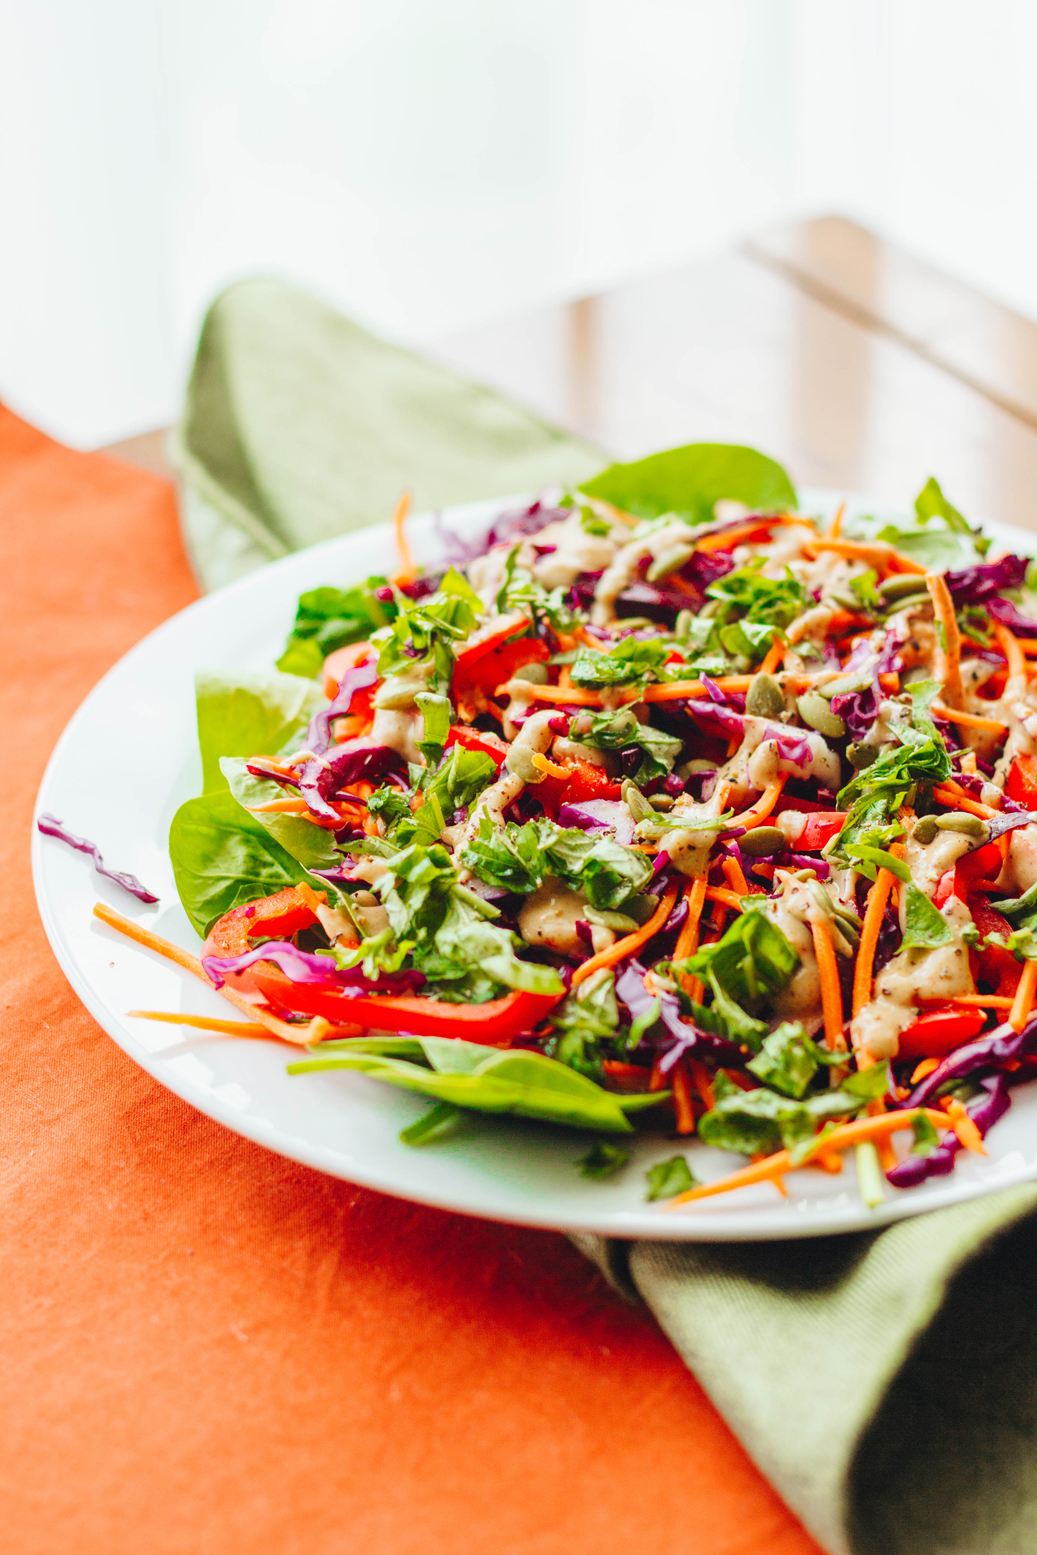 Thai Inspired Salad with Spicy Peanut Dressing